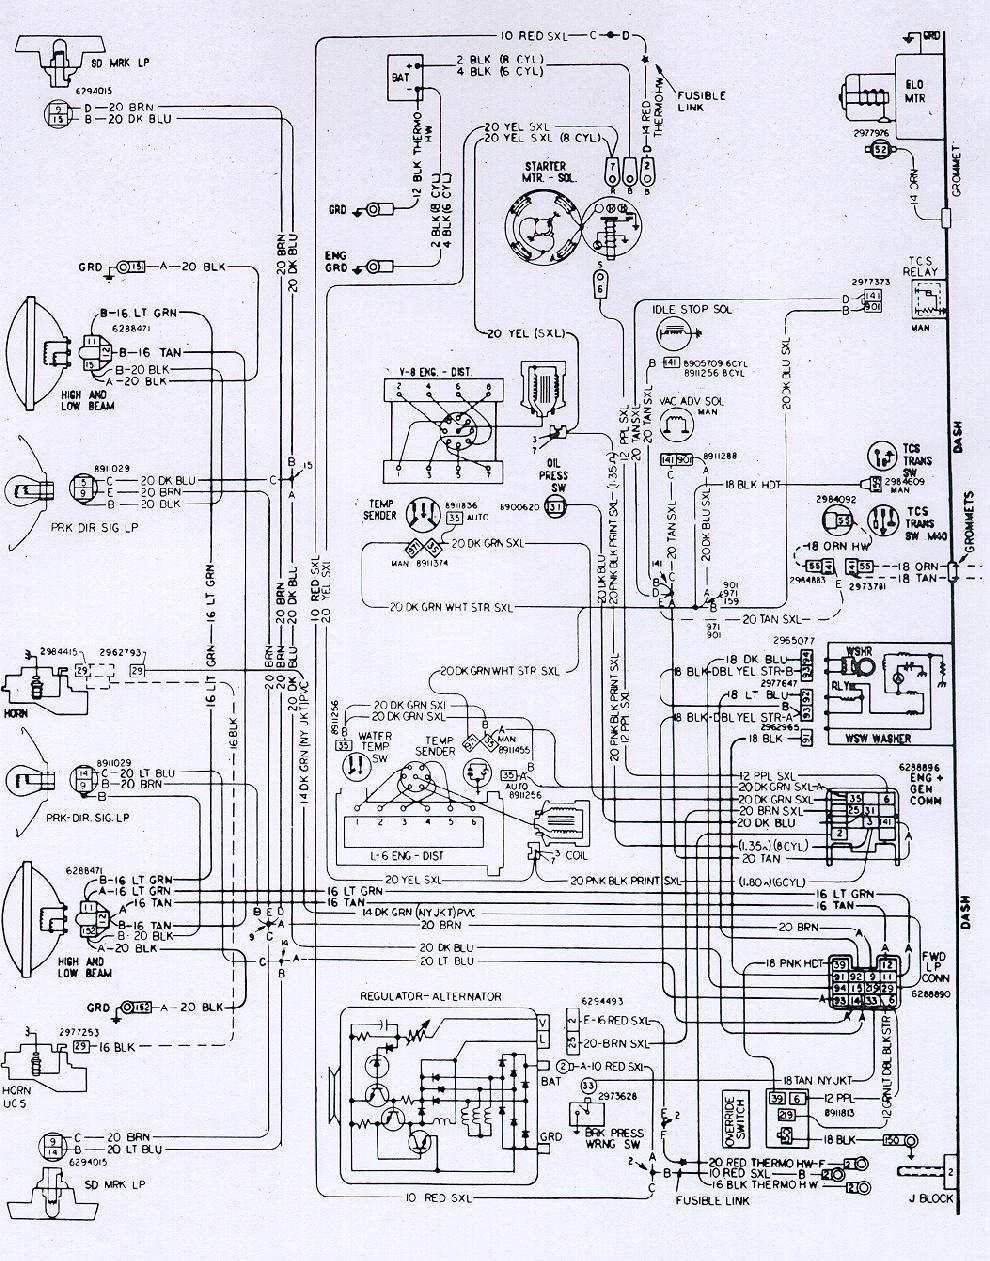 medium resolution of 1973 chevy camaro wiring diagram wiring diagram rows wiring diagrams for 1970 chevy camaro